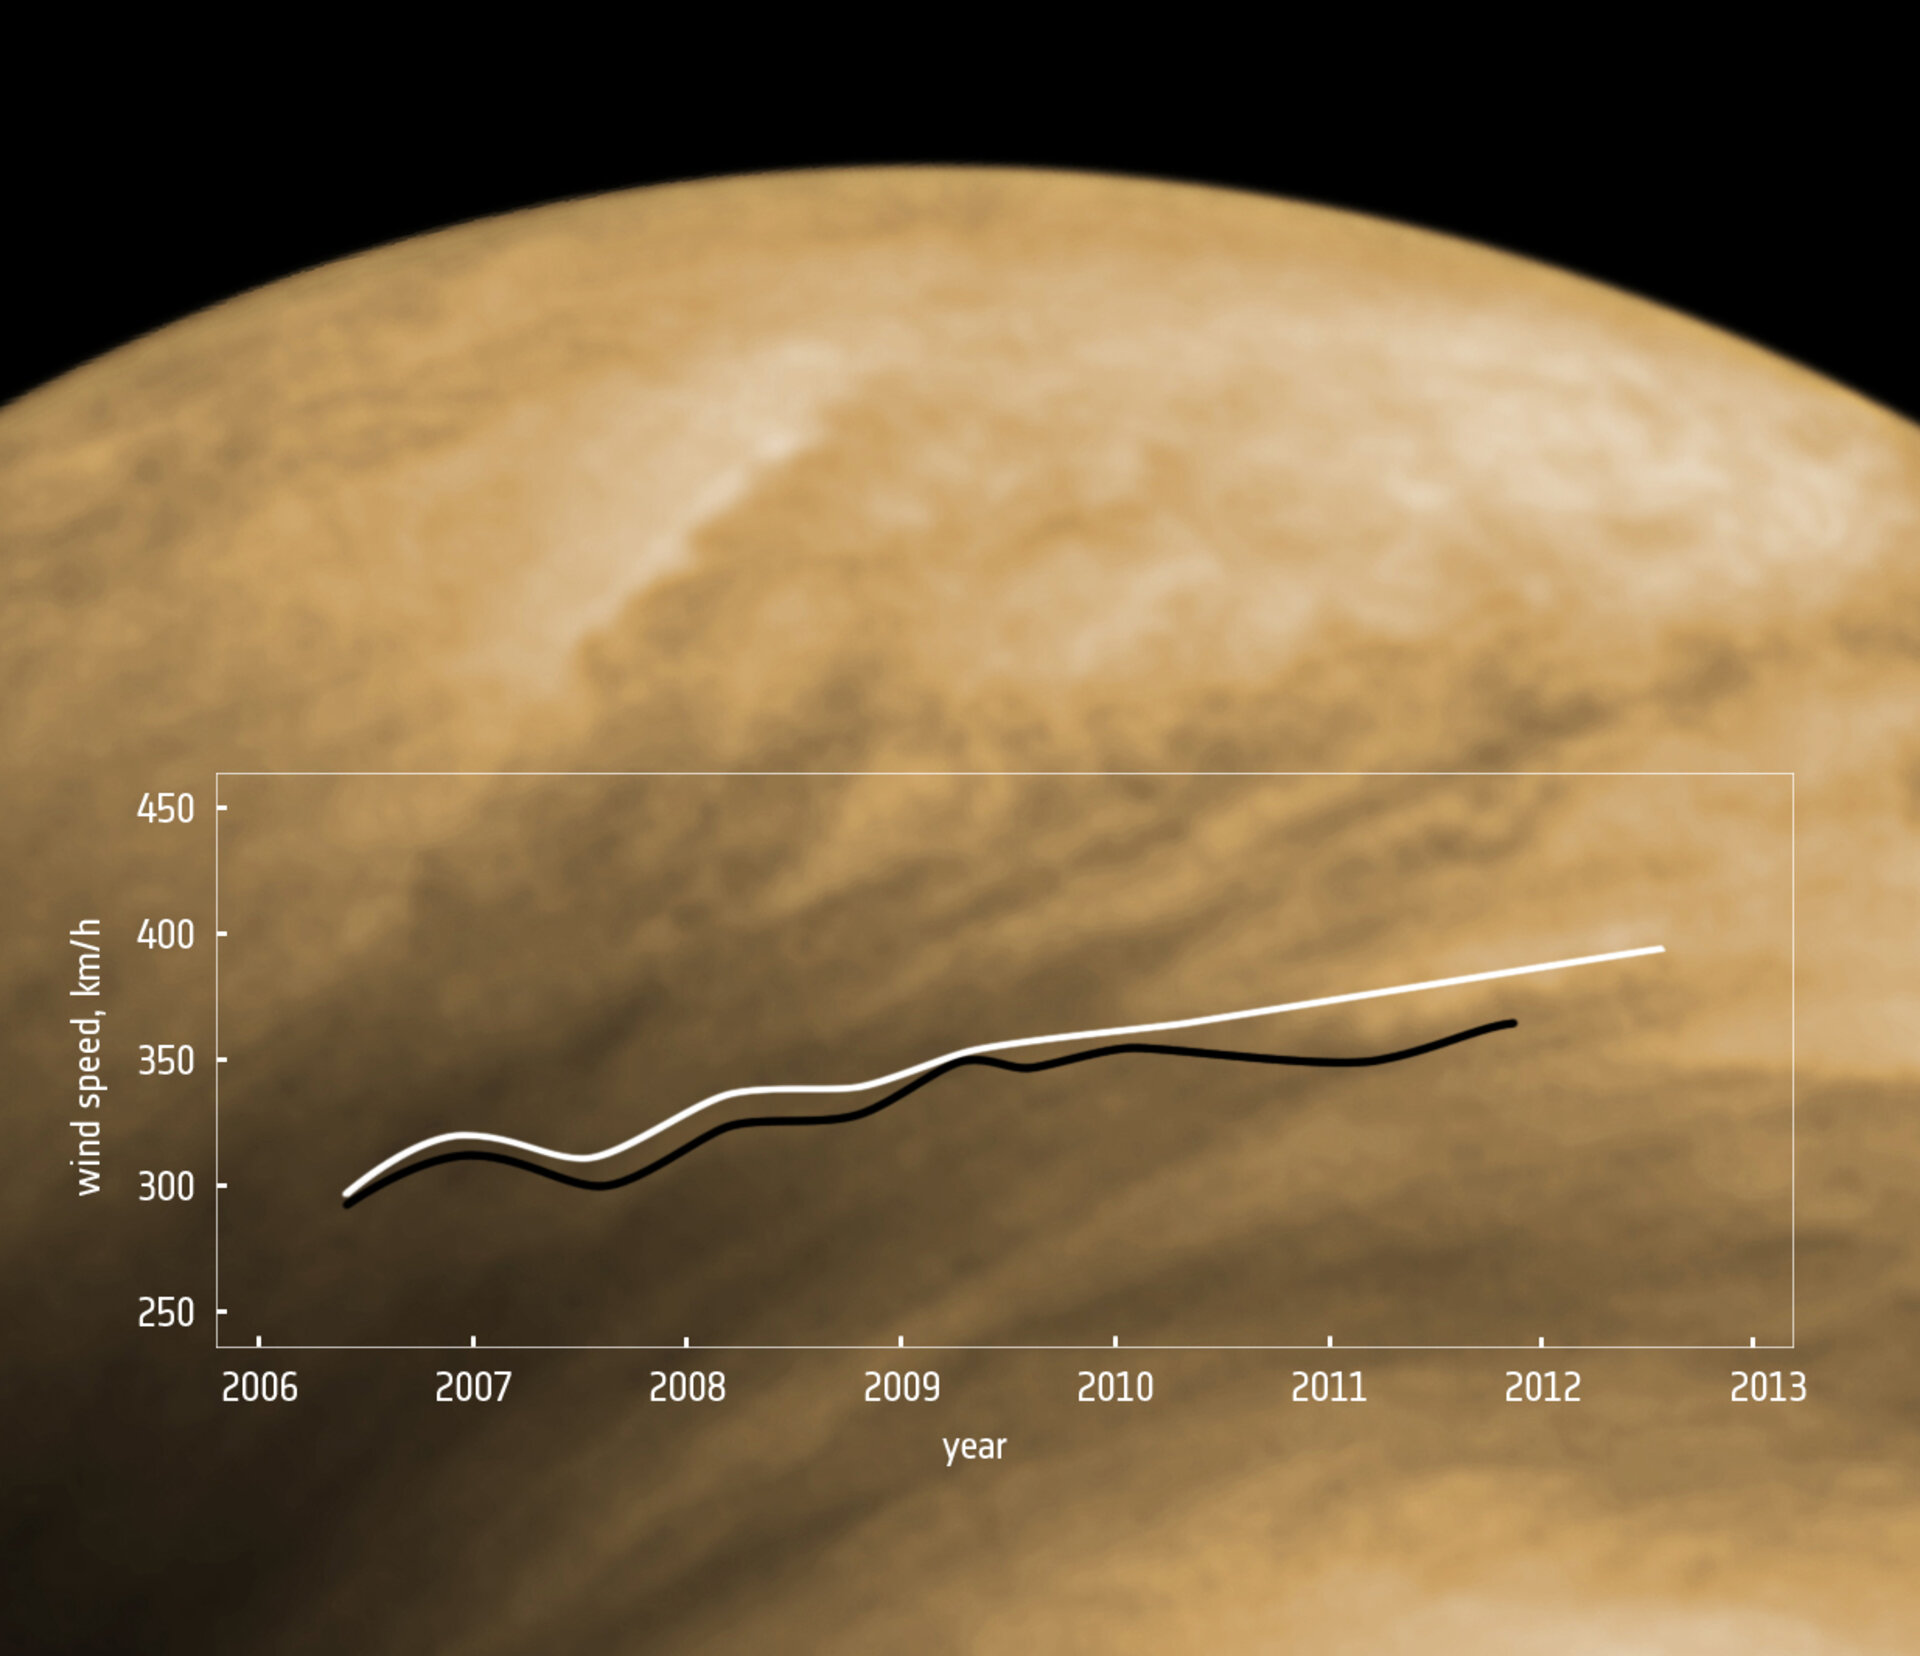 Increasing wind speeds on Venus